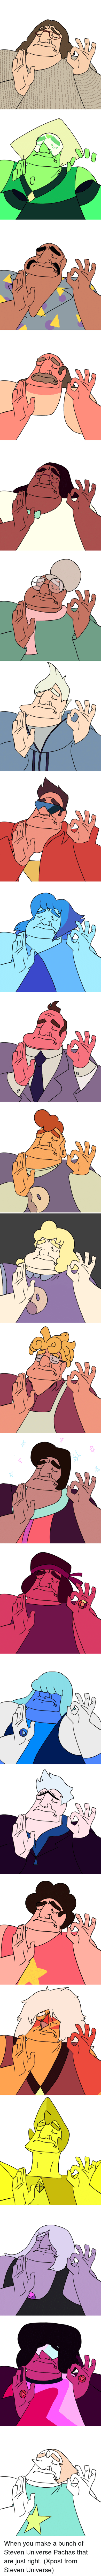 Pacha: よ   e   느   To   \/ ーーーai   C-   x(   よ   To   E   ぐーーーーーーーー   0 When you make a bunch of Steven Universe Pachas that are just right. (Xpost from Steven Universe)